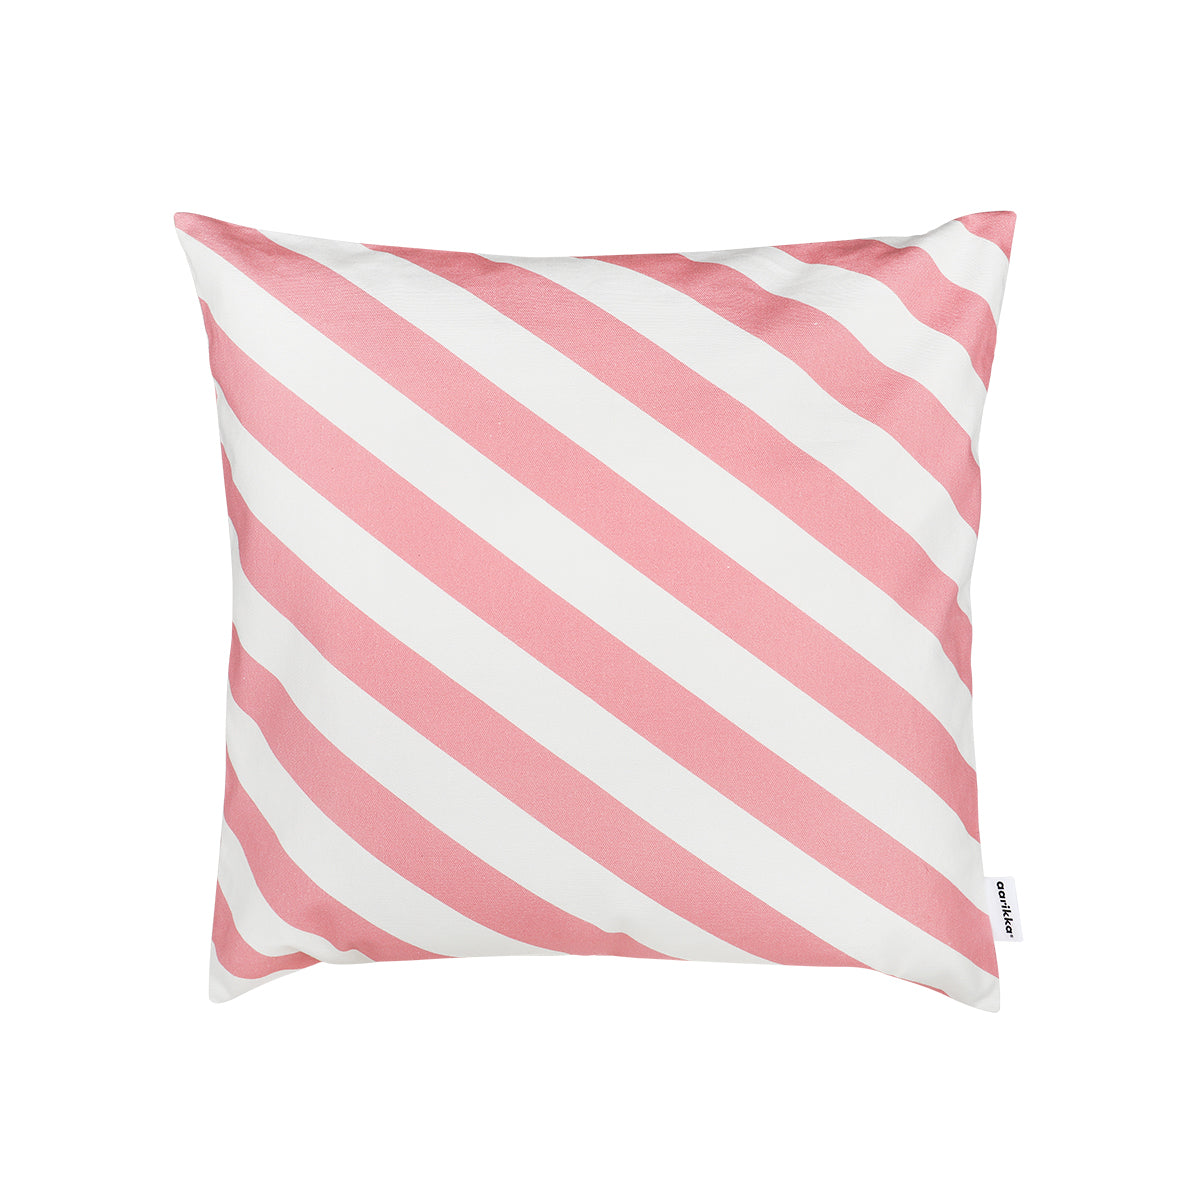 Riemuraita pillowcase